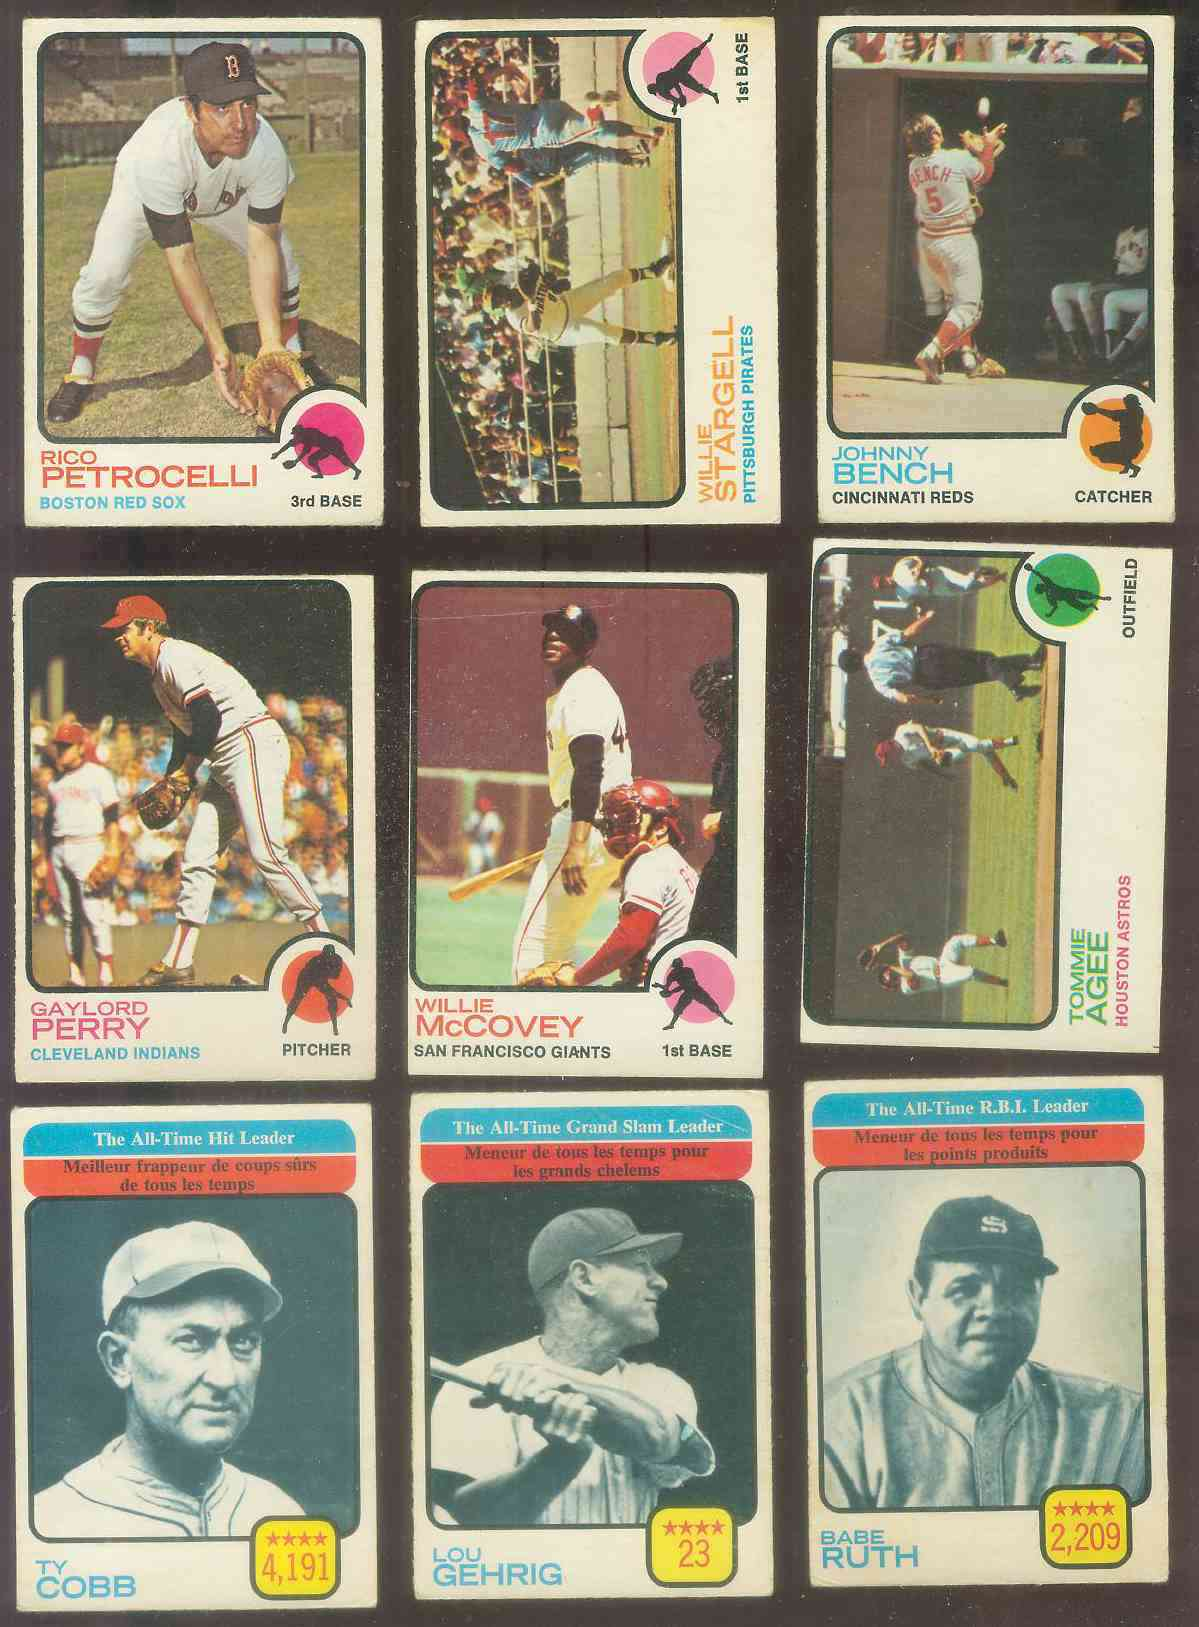 1973 O-Pee-Chee/OPC #471 Ty Cobb All-Time Leaders [#x] (4,191 Hits) (Tigers Baseball cards value